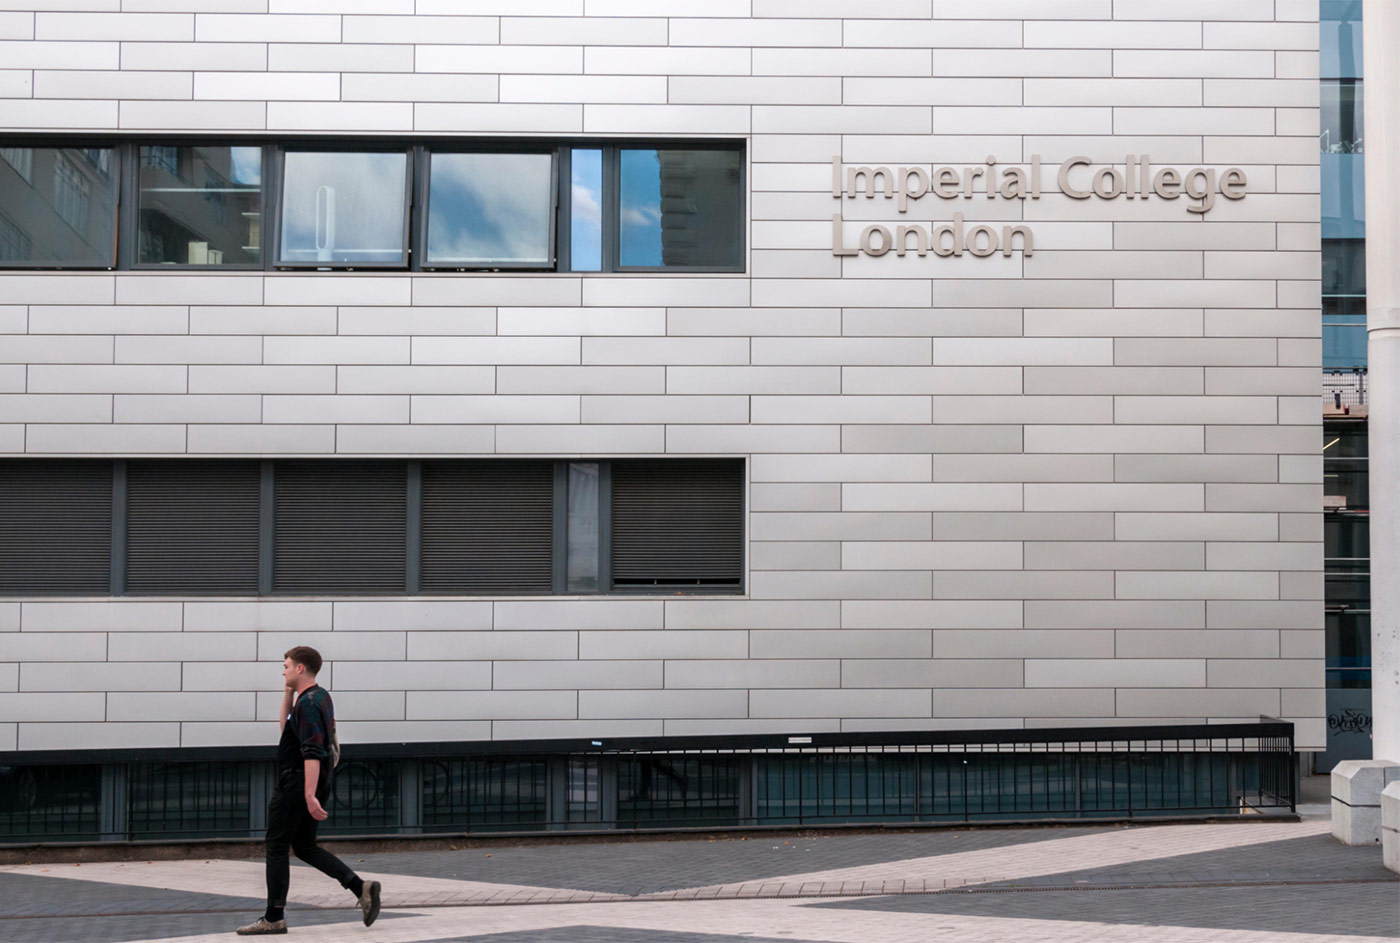 Imperial College London – 41 min tube (Old St/Northern, Victoria, Piccadilly)